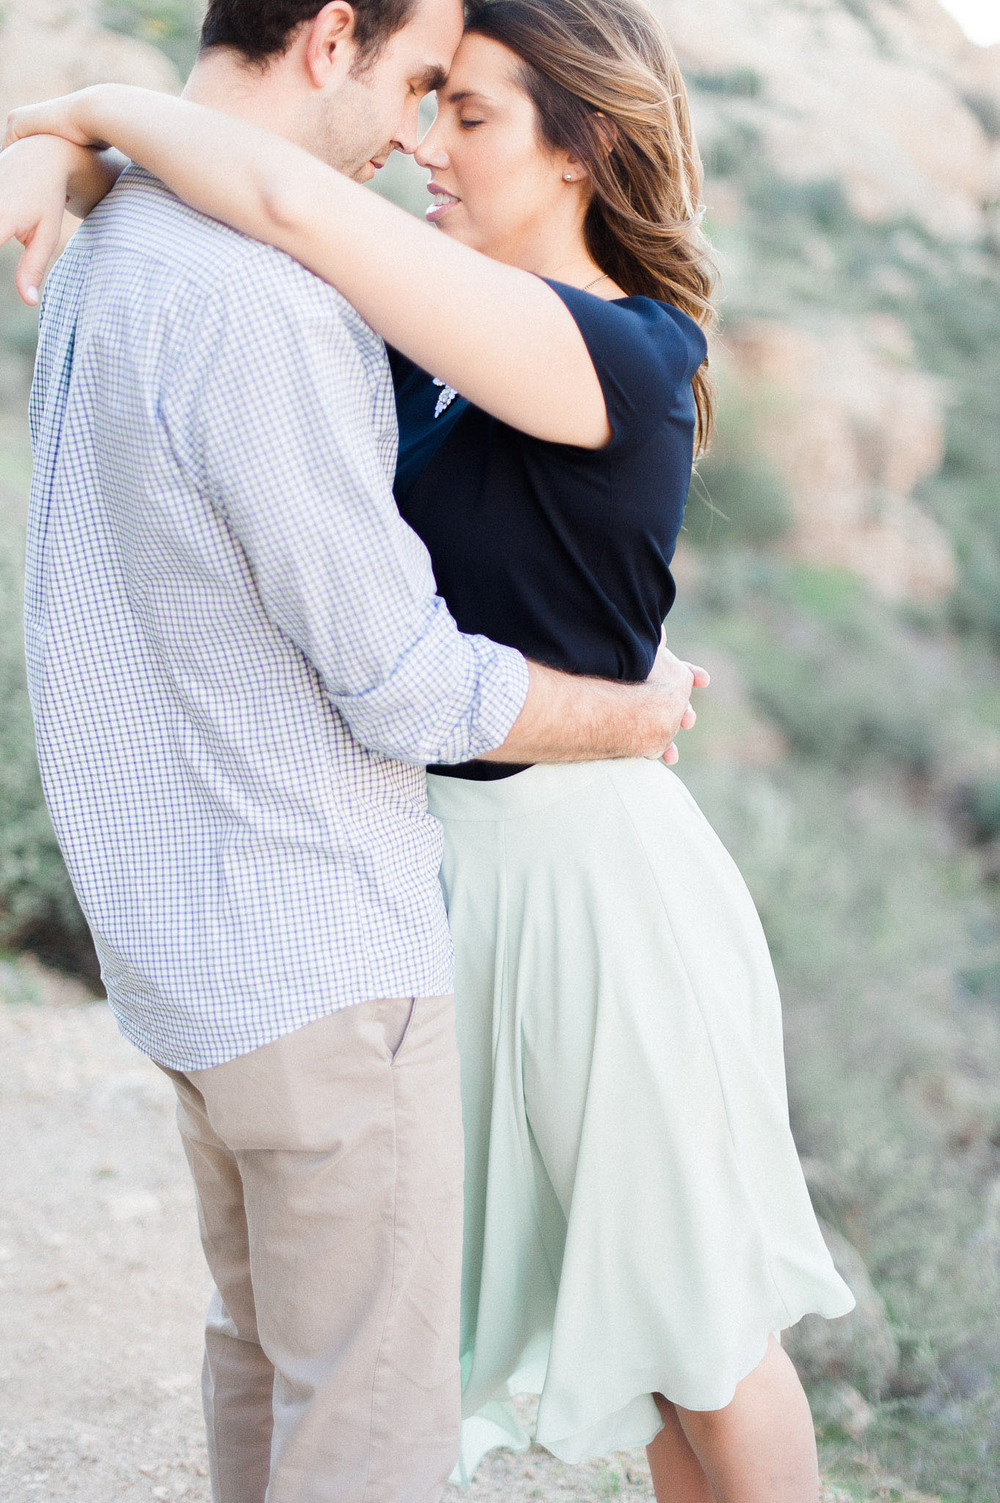 Cat and Todd Engagment-18.jpg